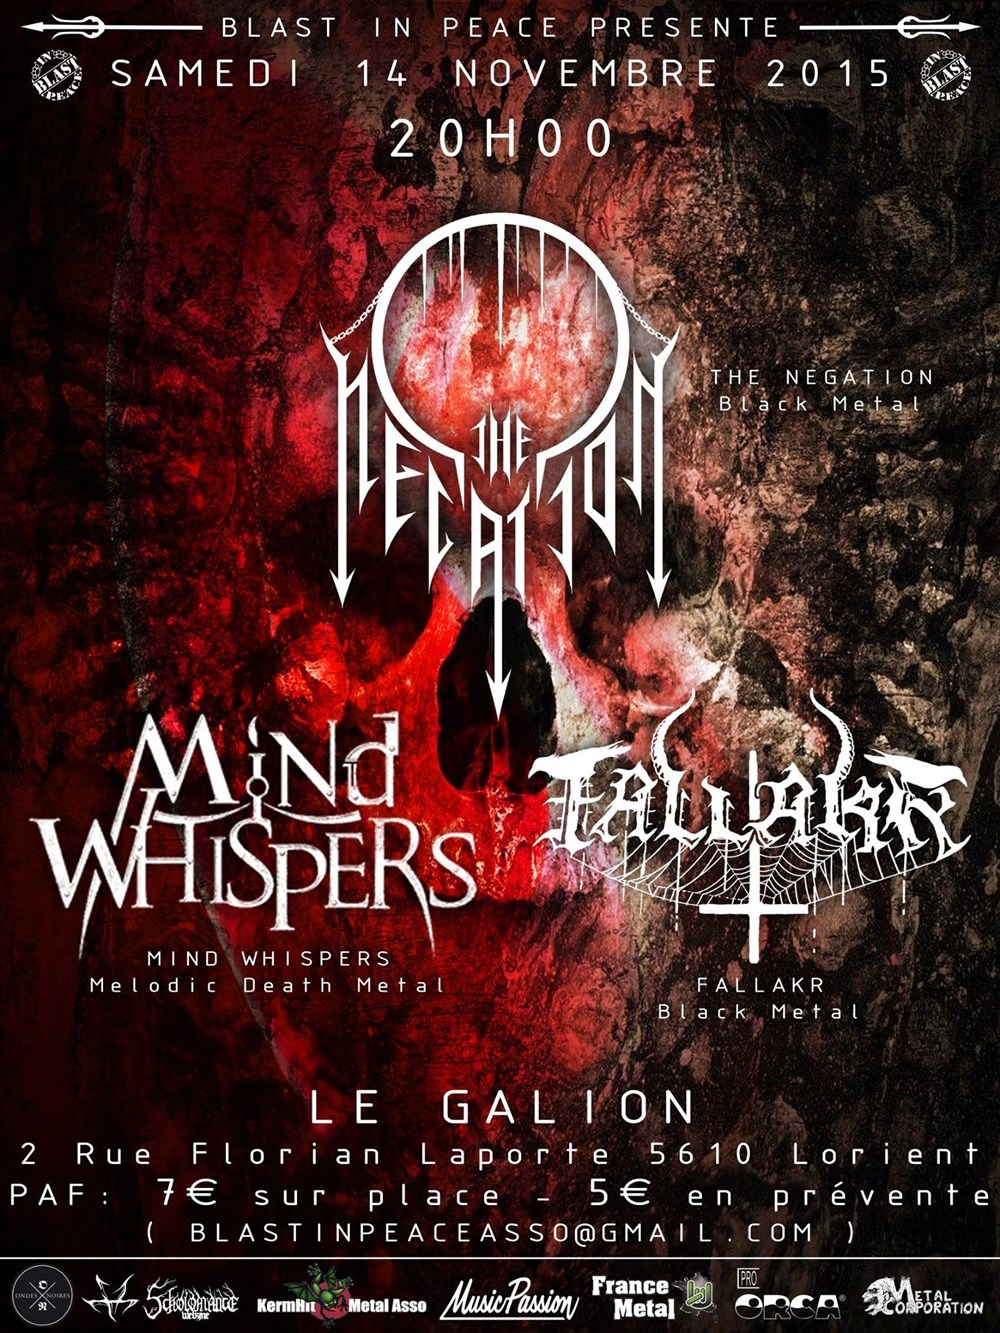 Concert de The Negation, Mind Whispers et Fallakr Lorient